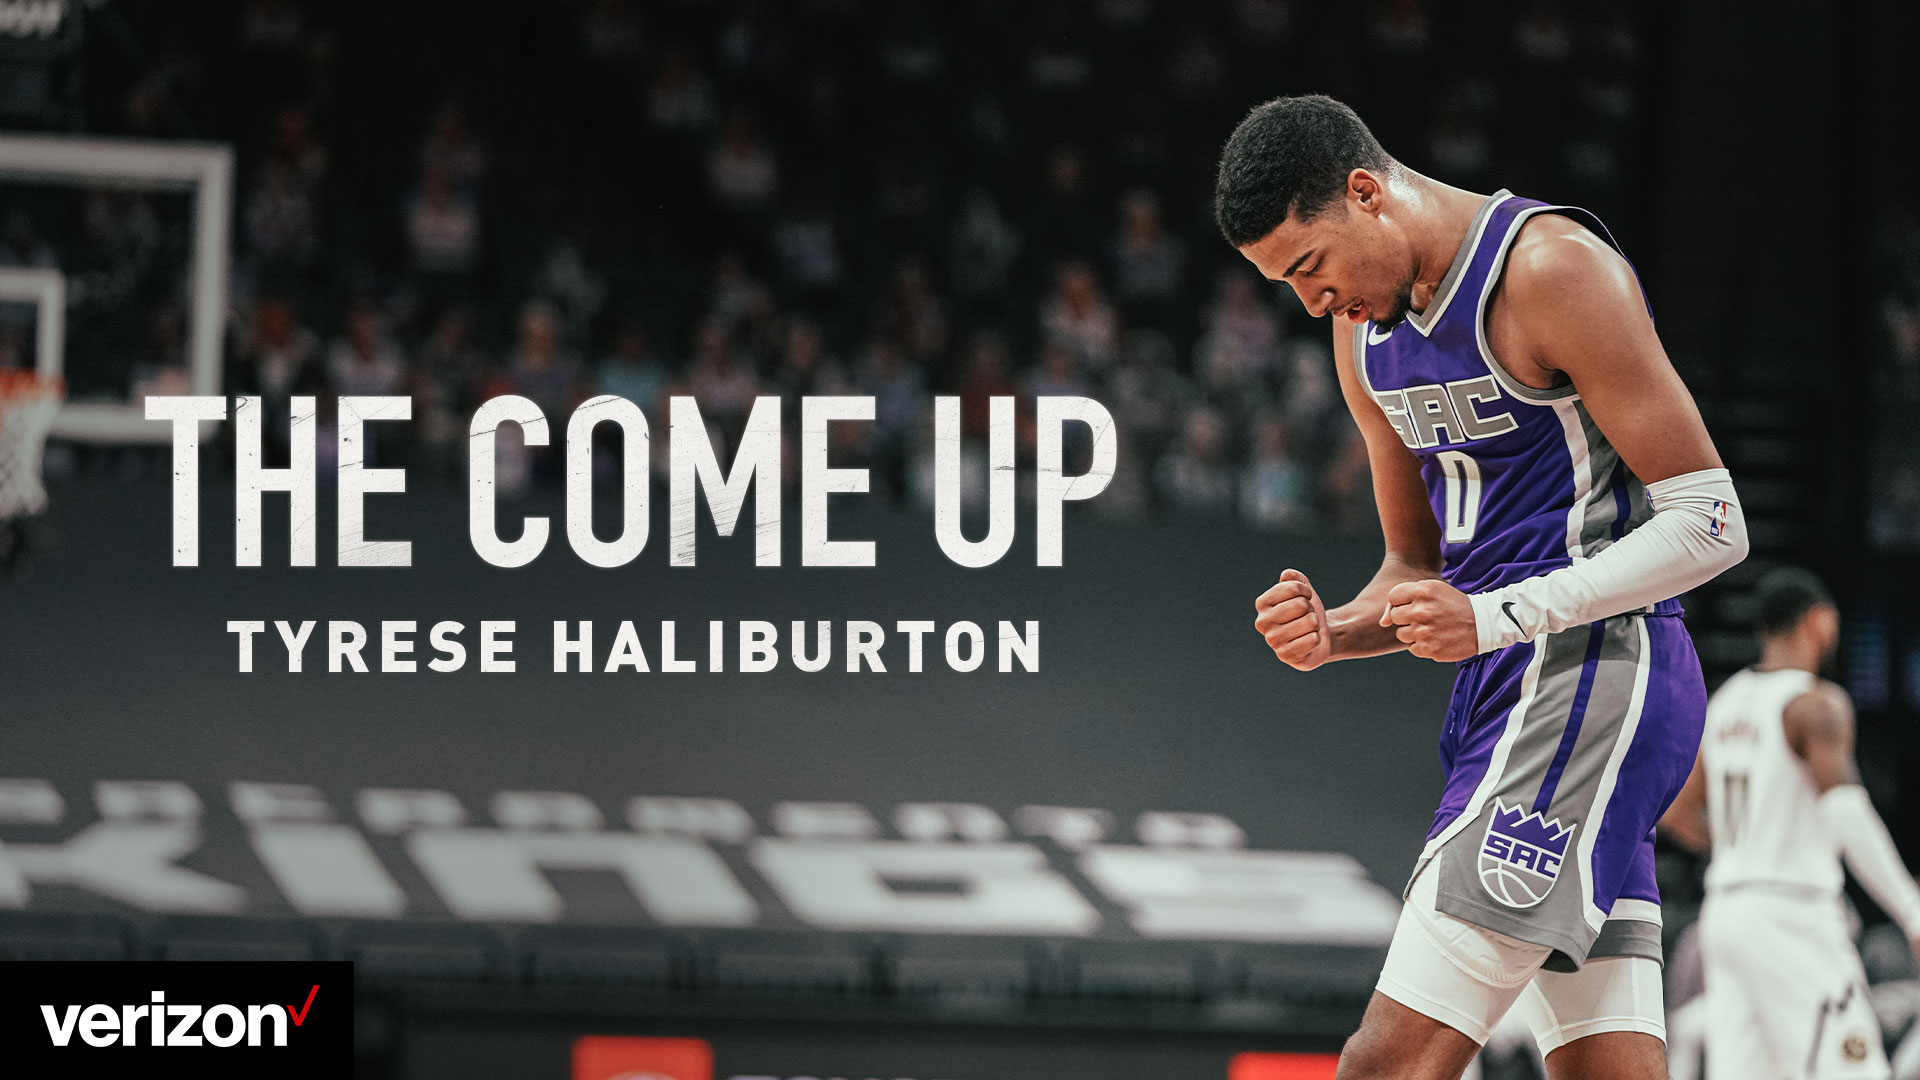 The Come Up: The Tyrese Haliburton Story | Episode 2